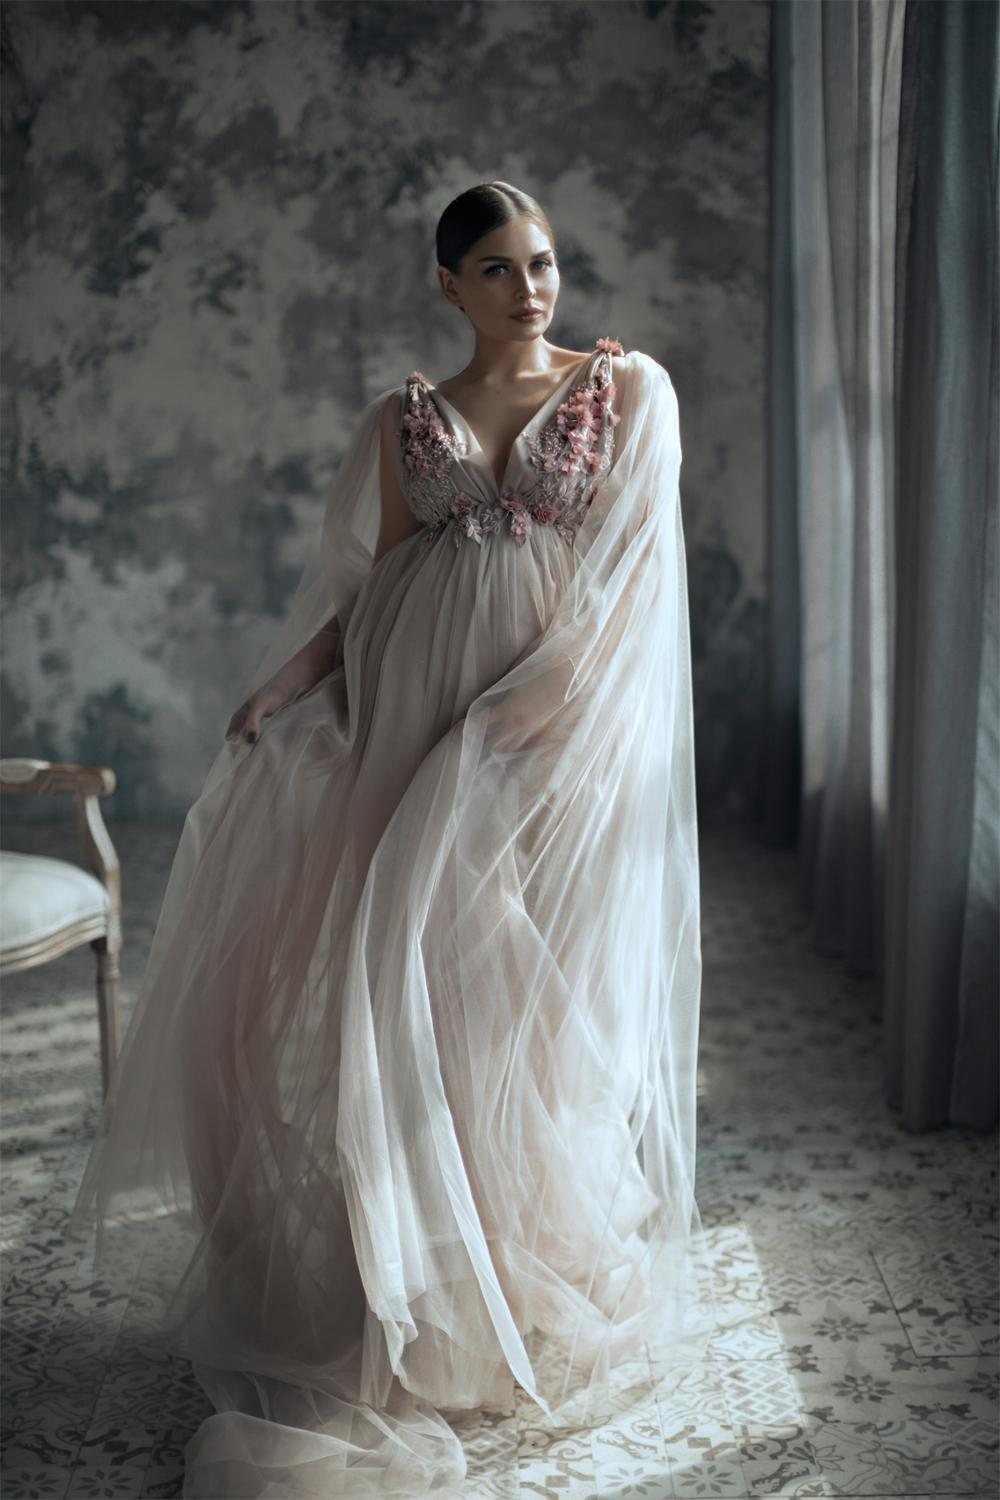 2021 Customised A Line Maternity Dresses Tulle Floral Appliqued Boudoir Dress Wedding Sleepwear Bathrobes Nightgowns Gown